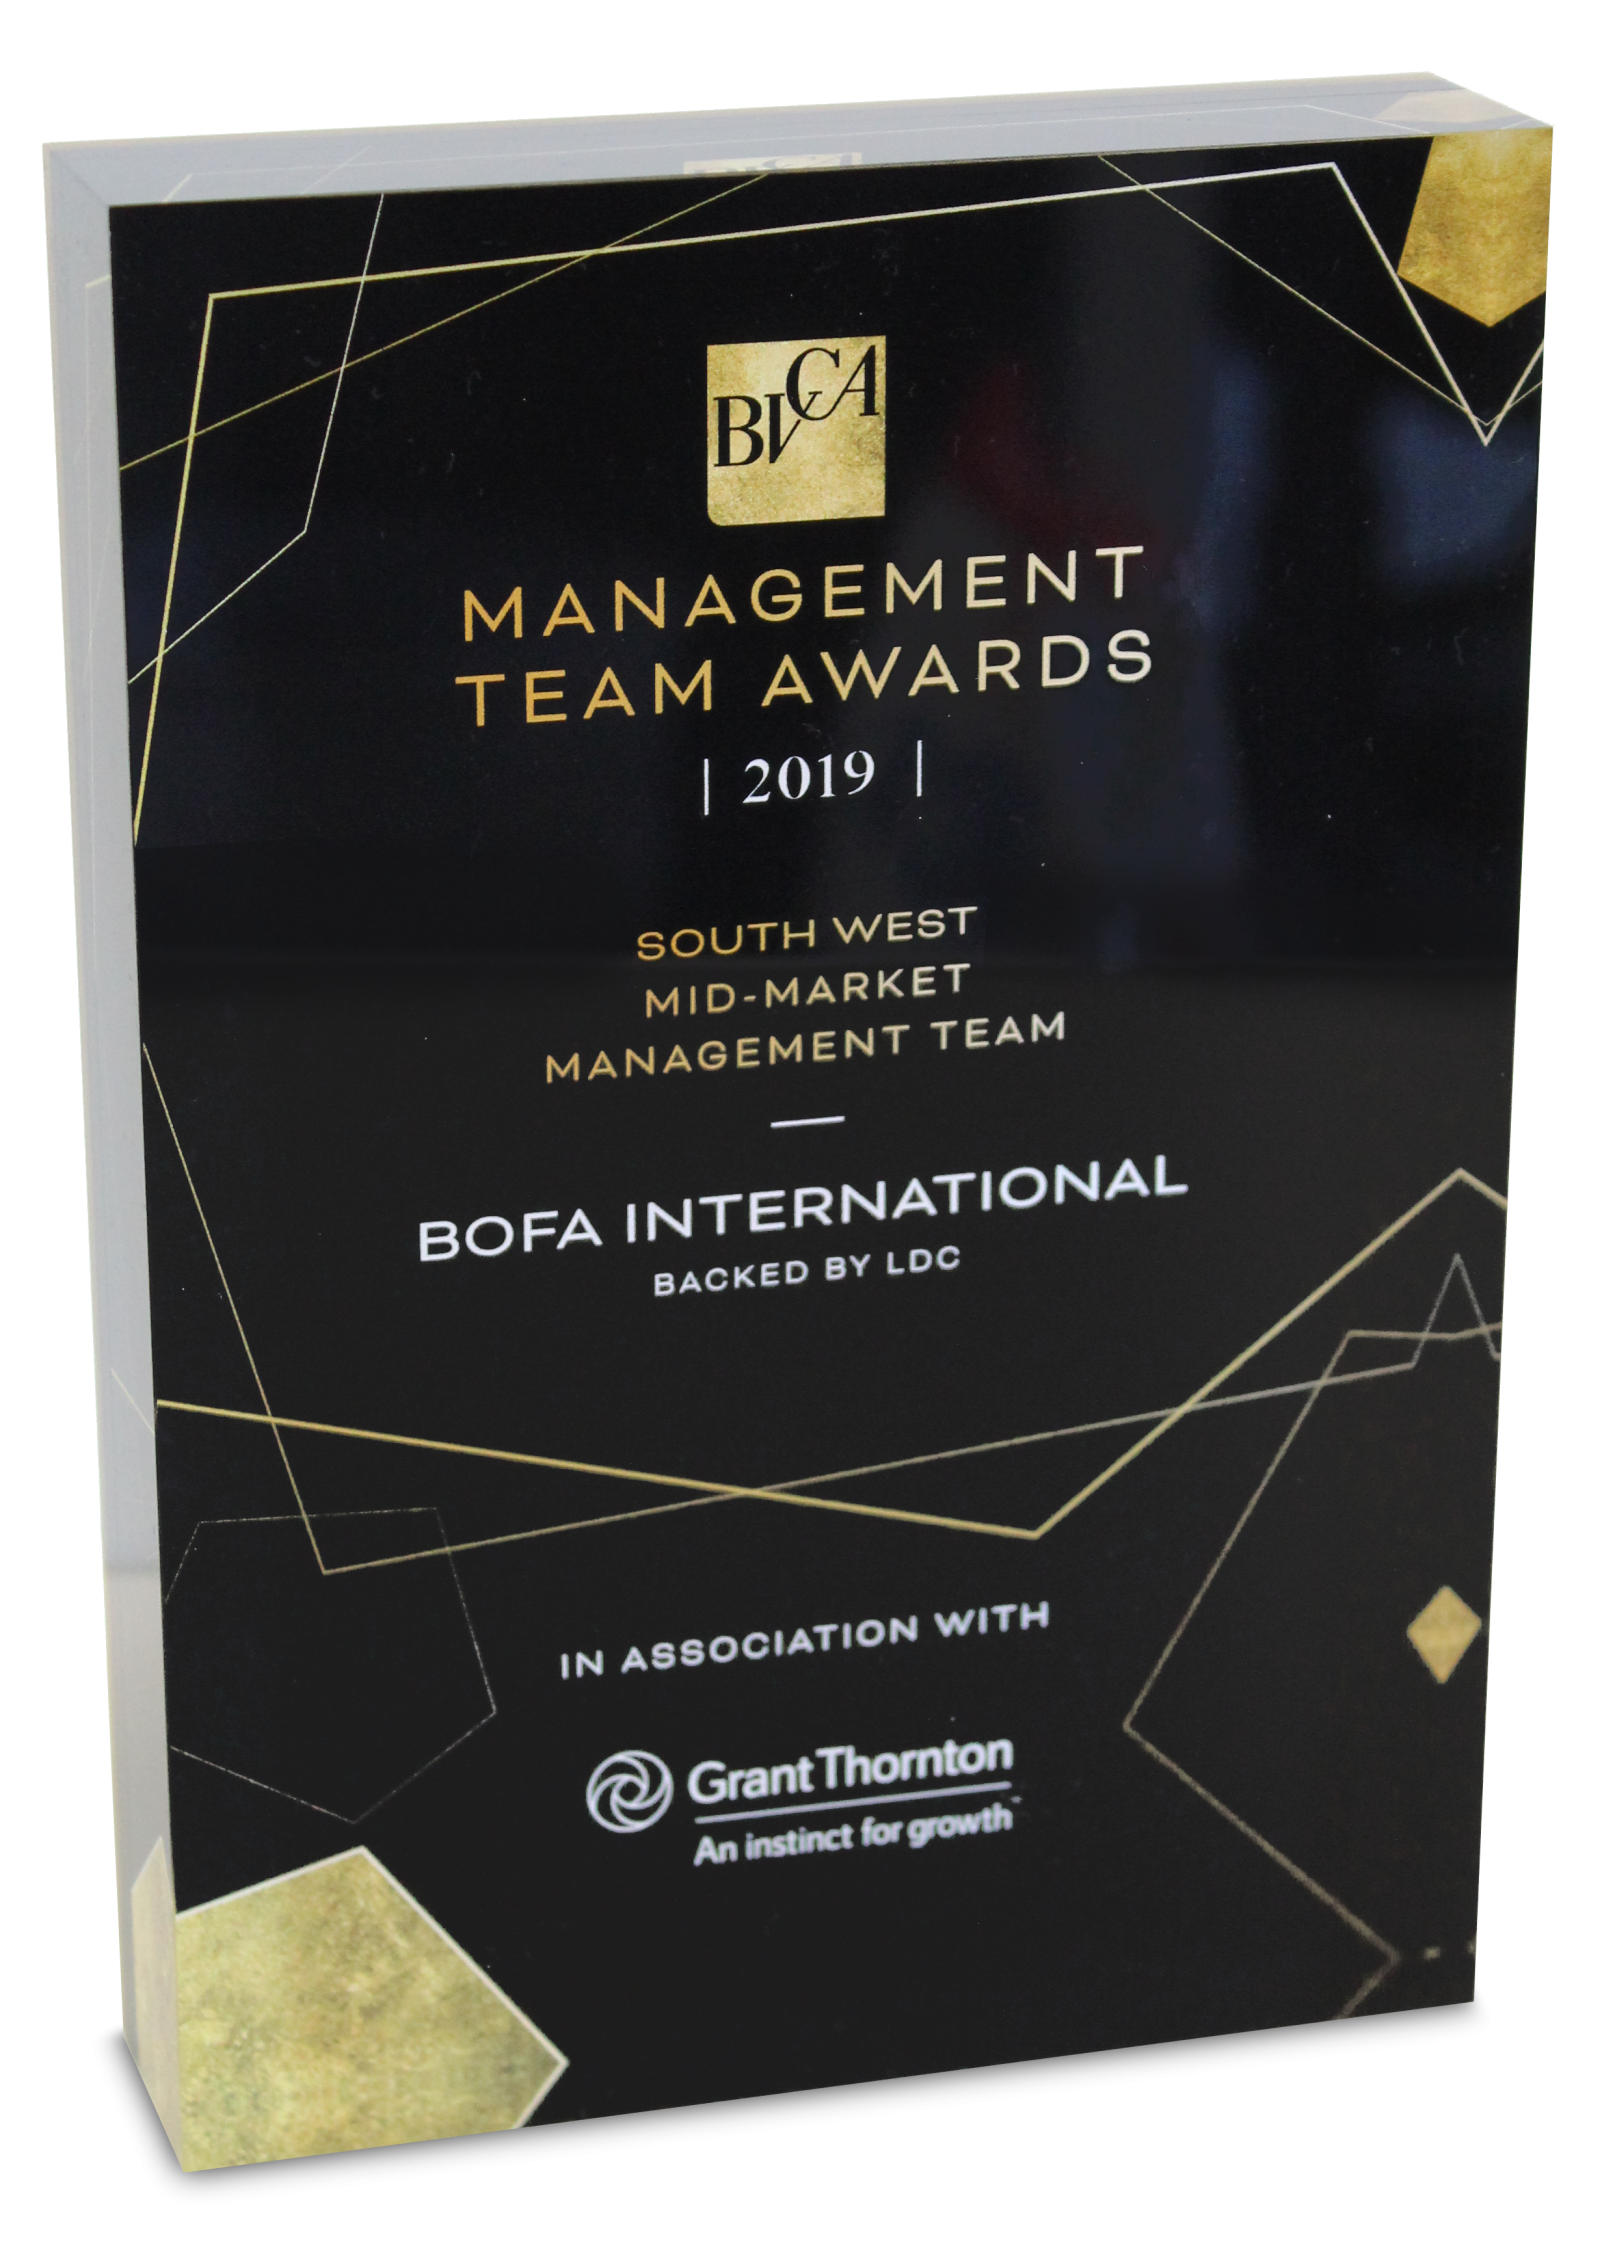 BVCA Award 2019 - Mid-Market Management Team of the Year